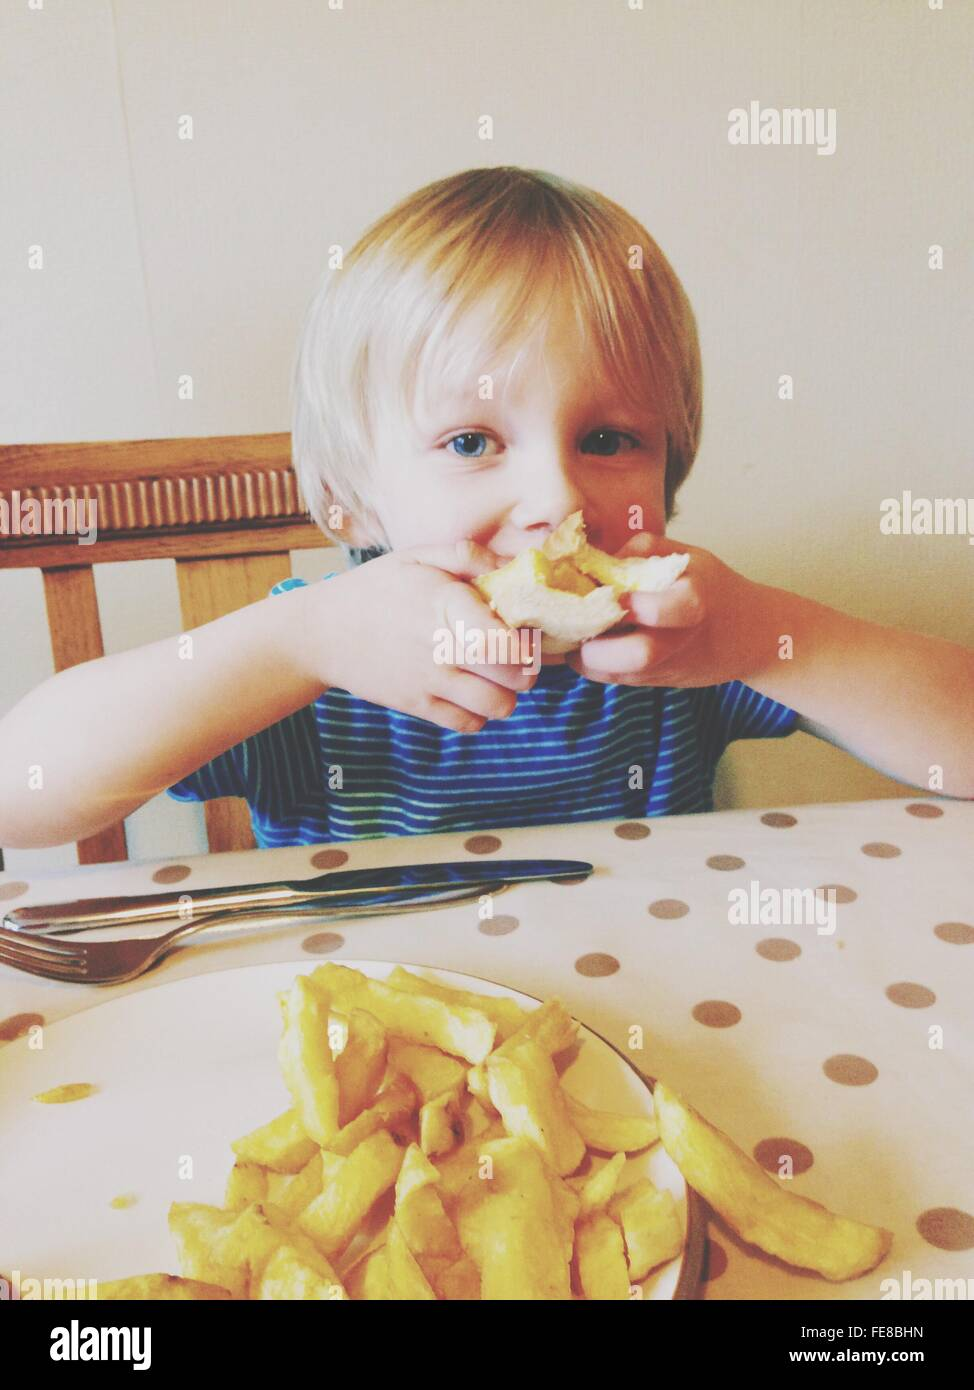 Portrait Of Boy Eating Chip Butty - Stock Image